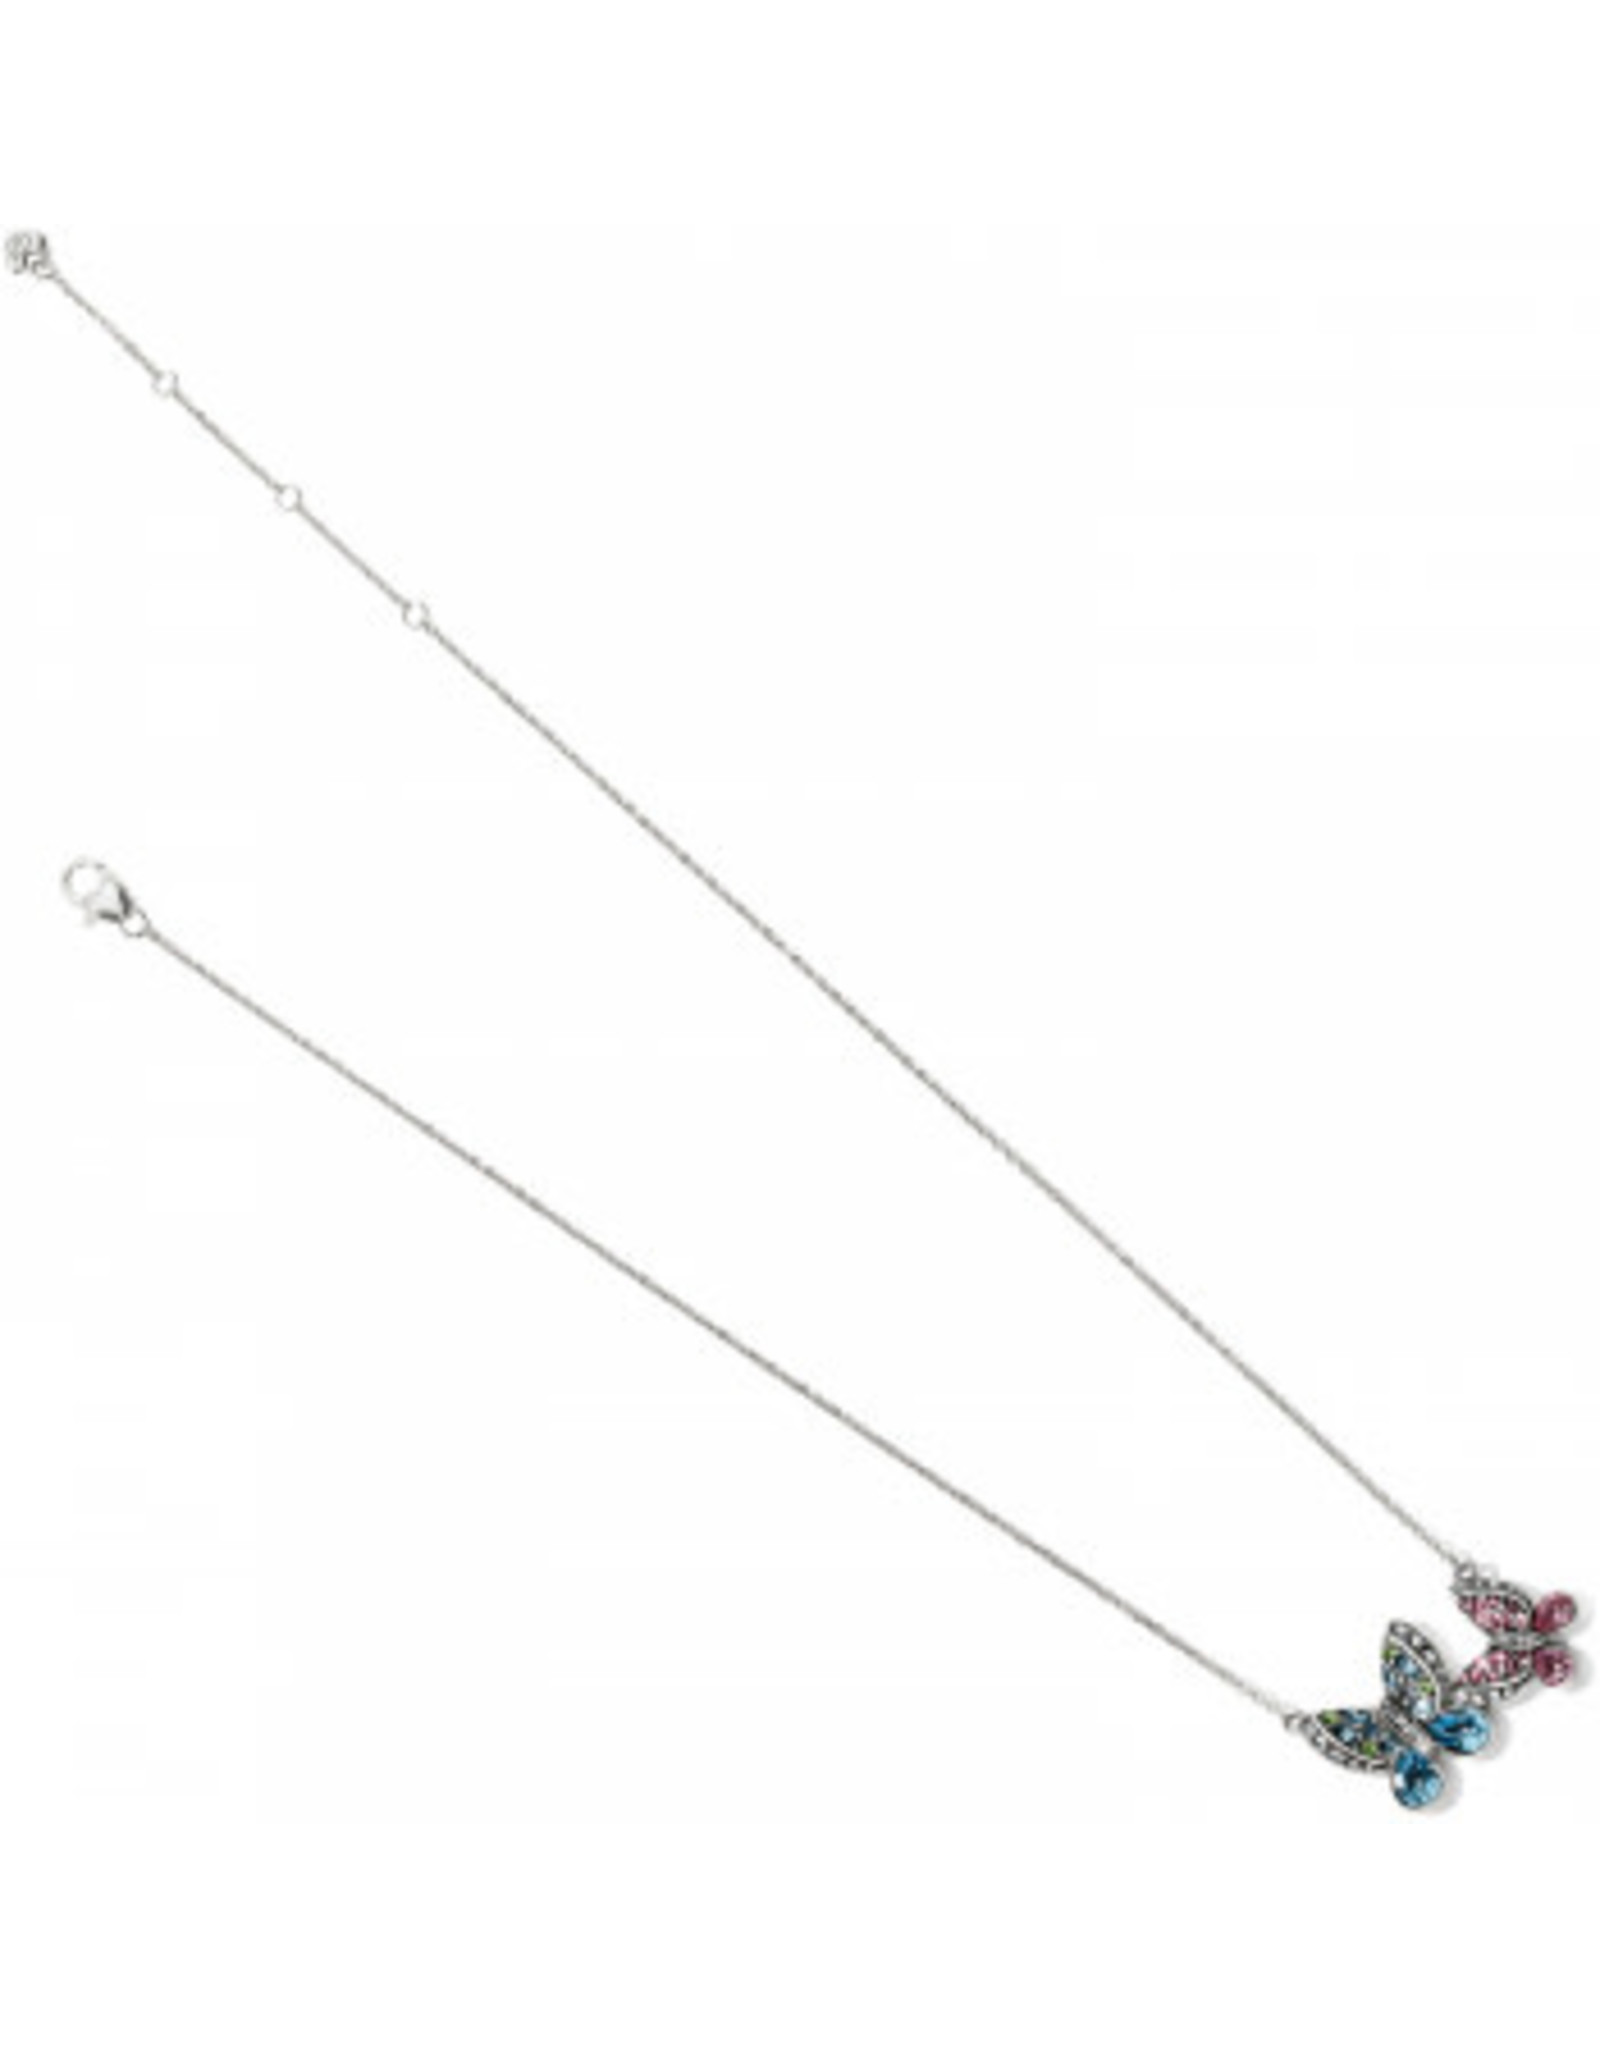 Brighton Trust Your Journey Love Butterflies Reversible Necklace Silver-Rose-Blue